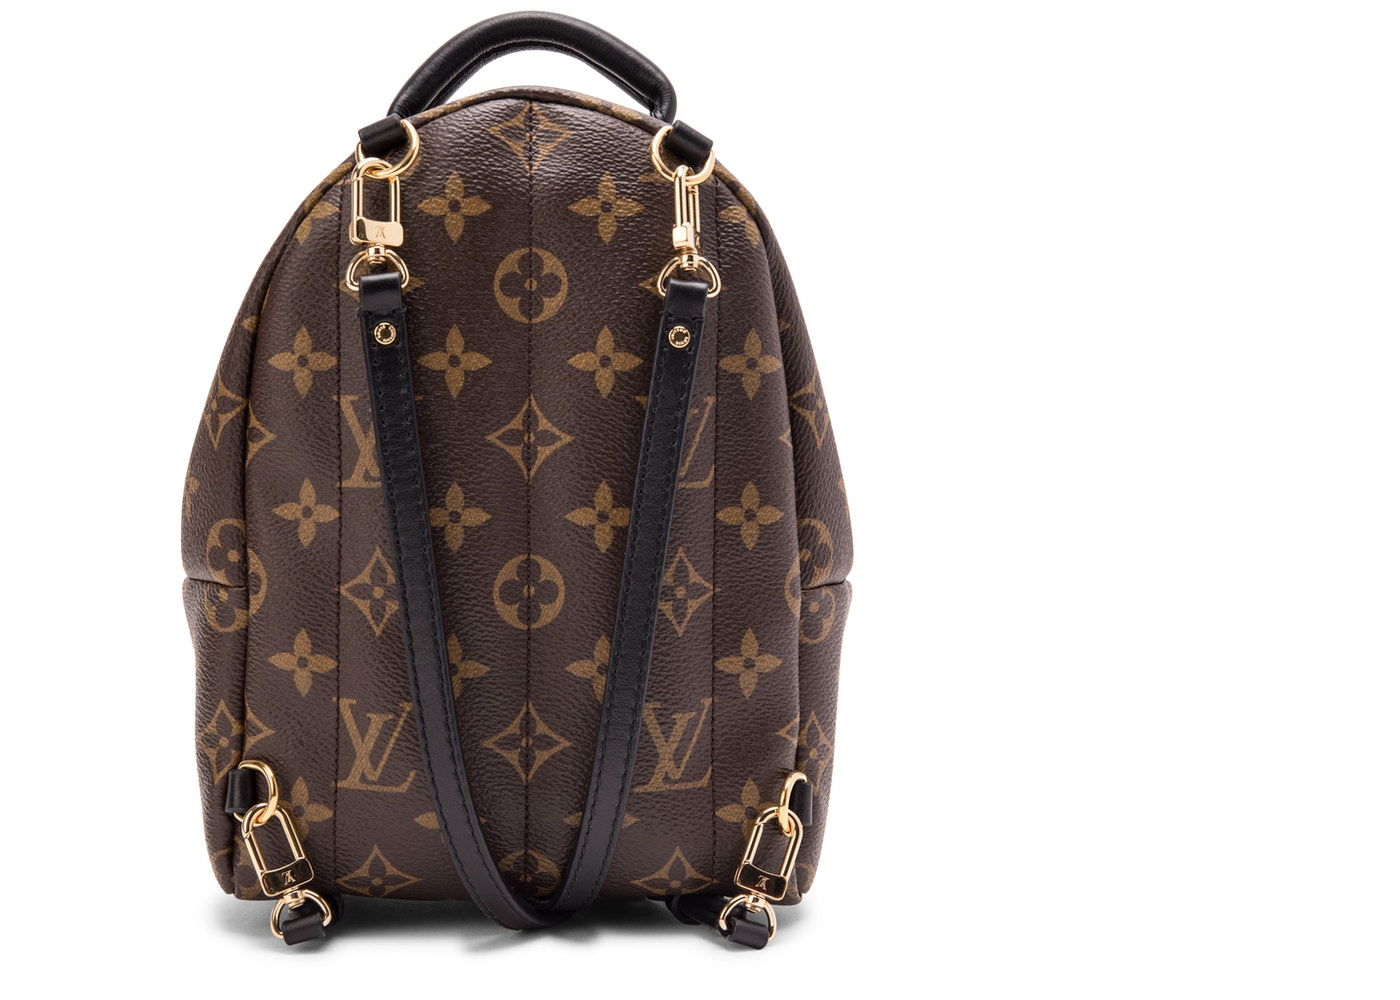 8a5a1189b30a Louis Vuitton Palm Springs Monogram Mini Brown